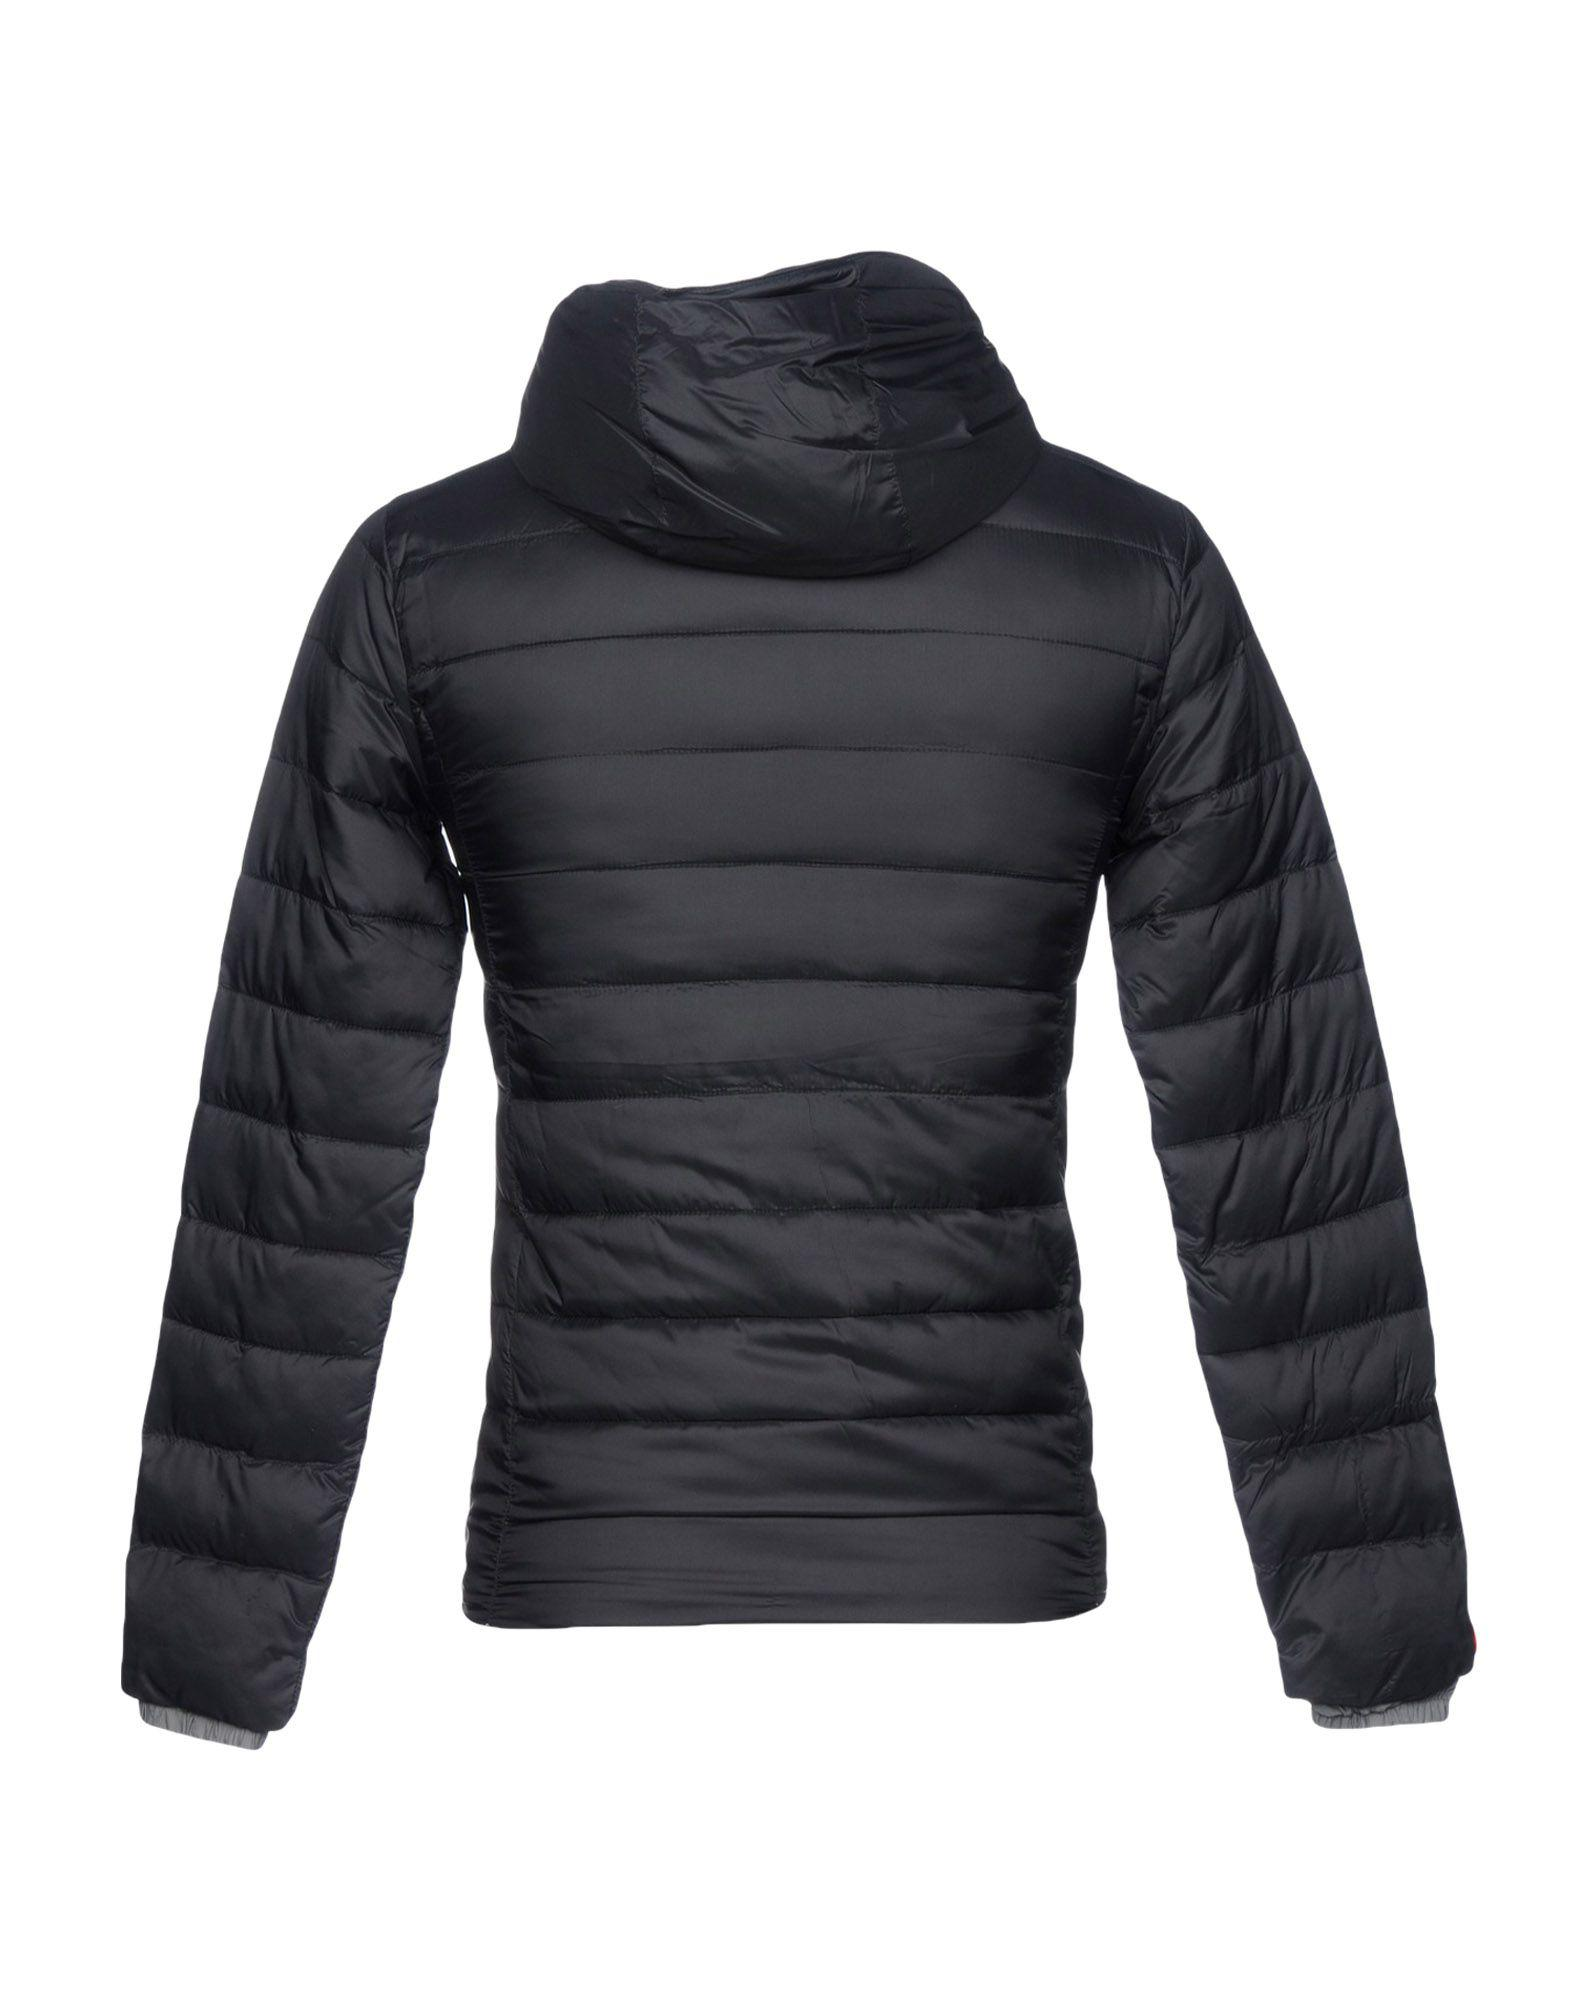 Superdry Synthetic Down Jacket in Black for Men